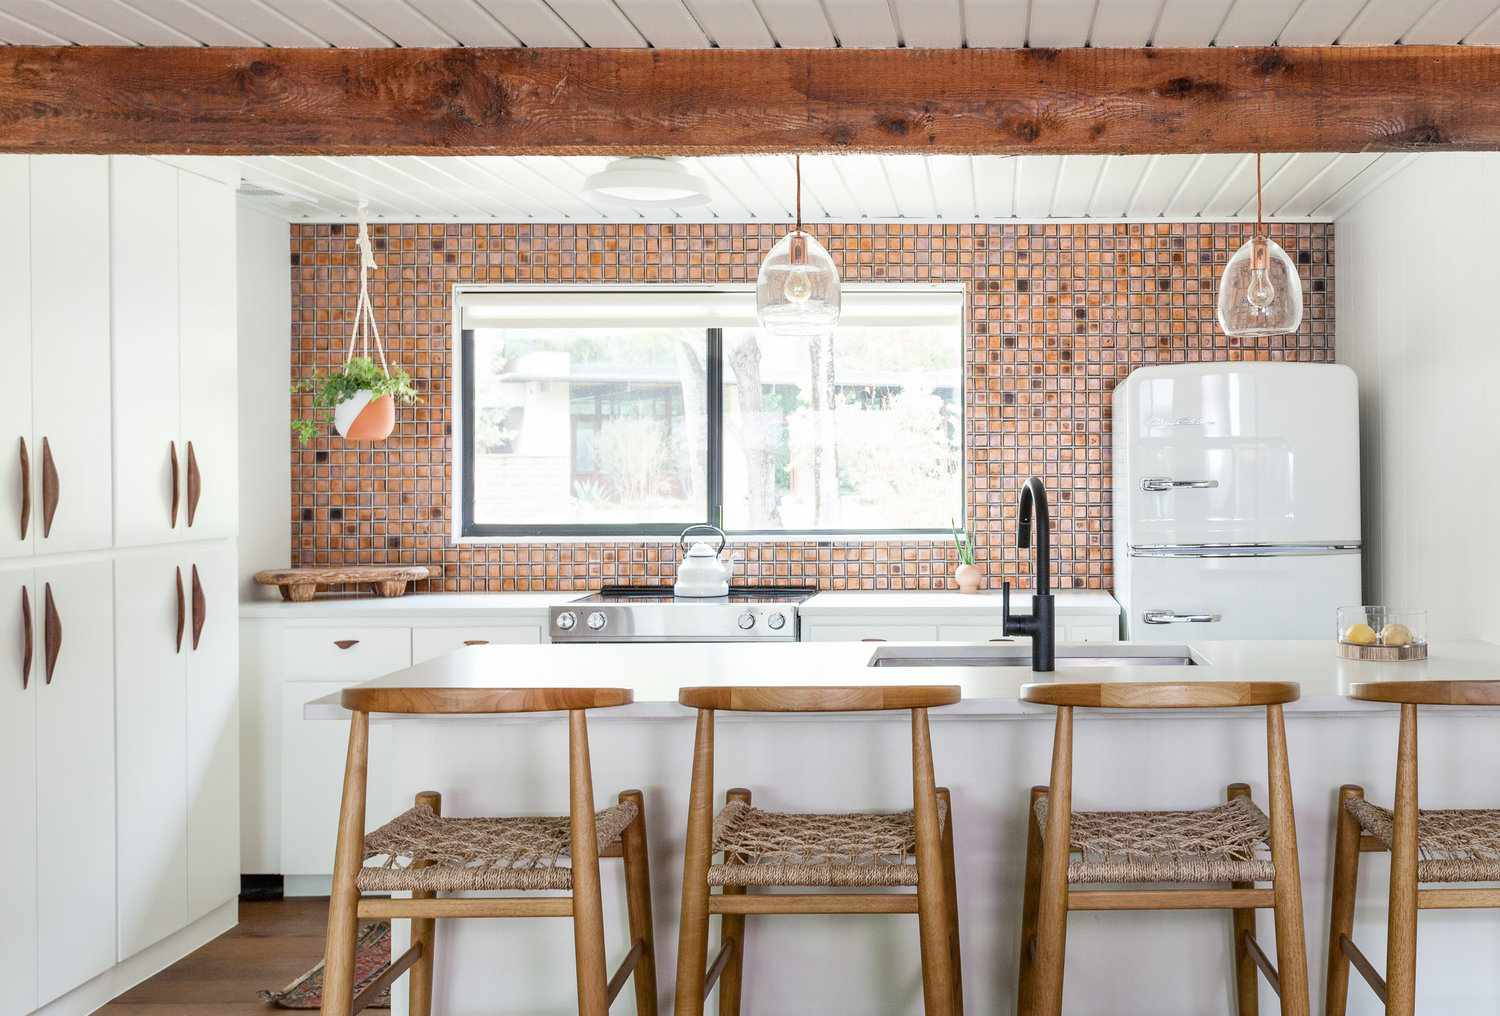 A kitchen lined with copper tiles